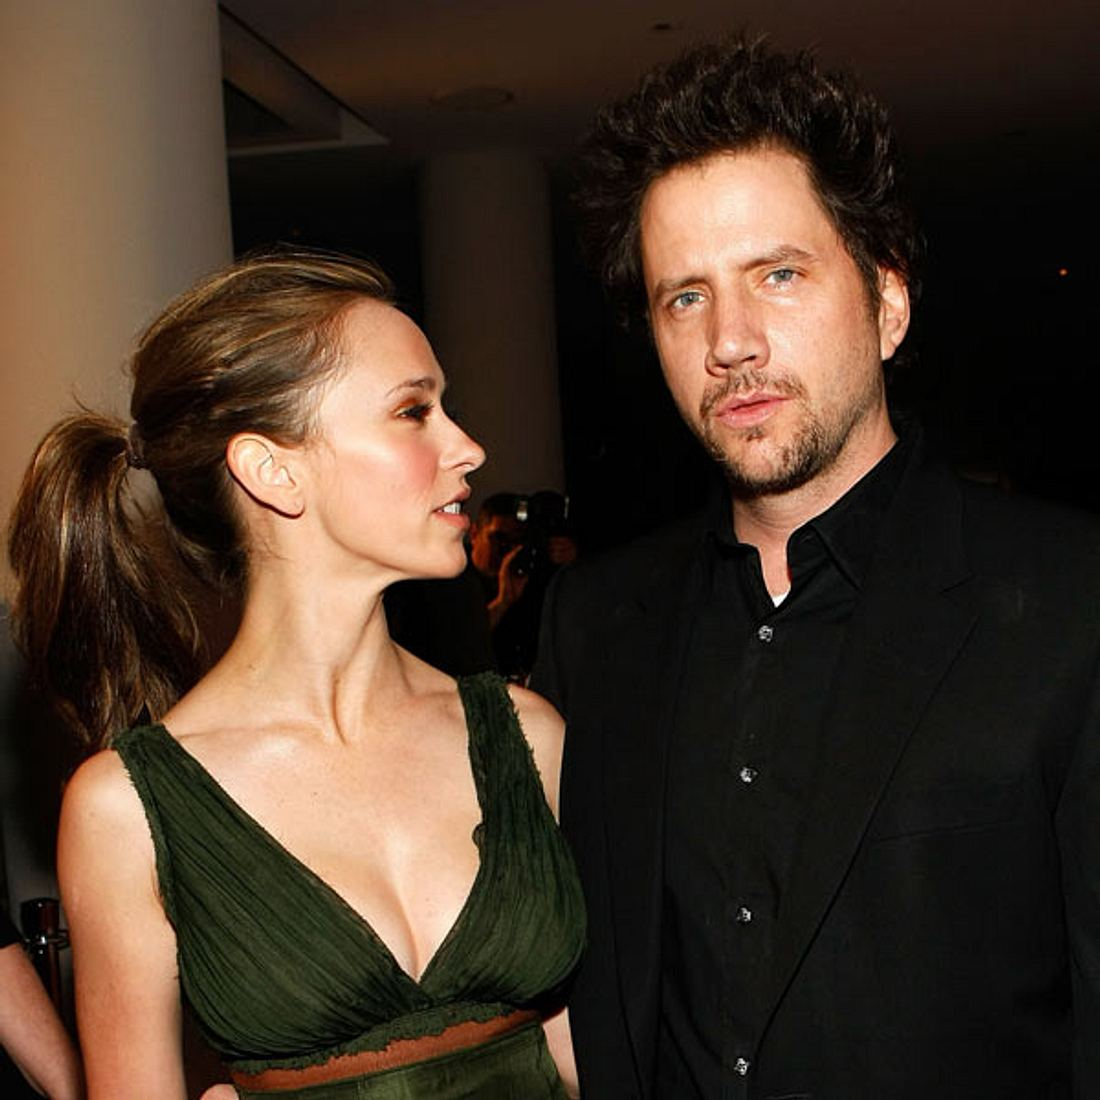 War Jamie Kennedy Freundin Jennifer Love Hewitt untreu?